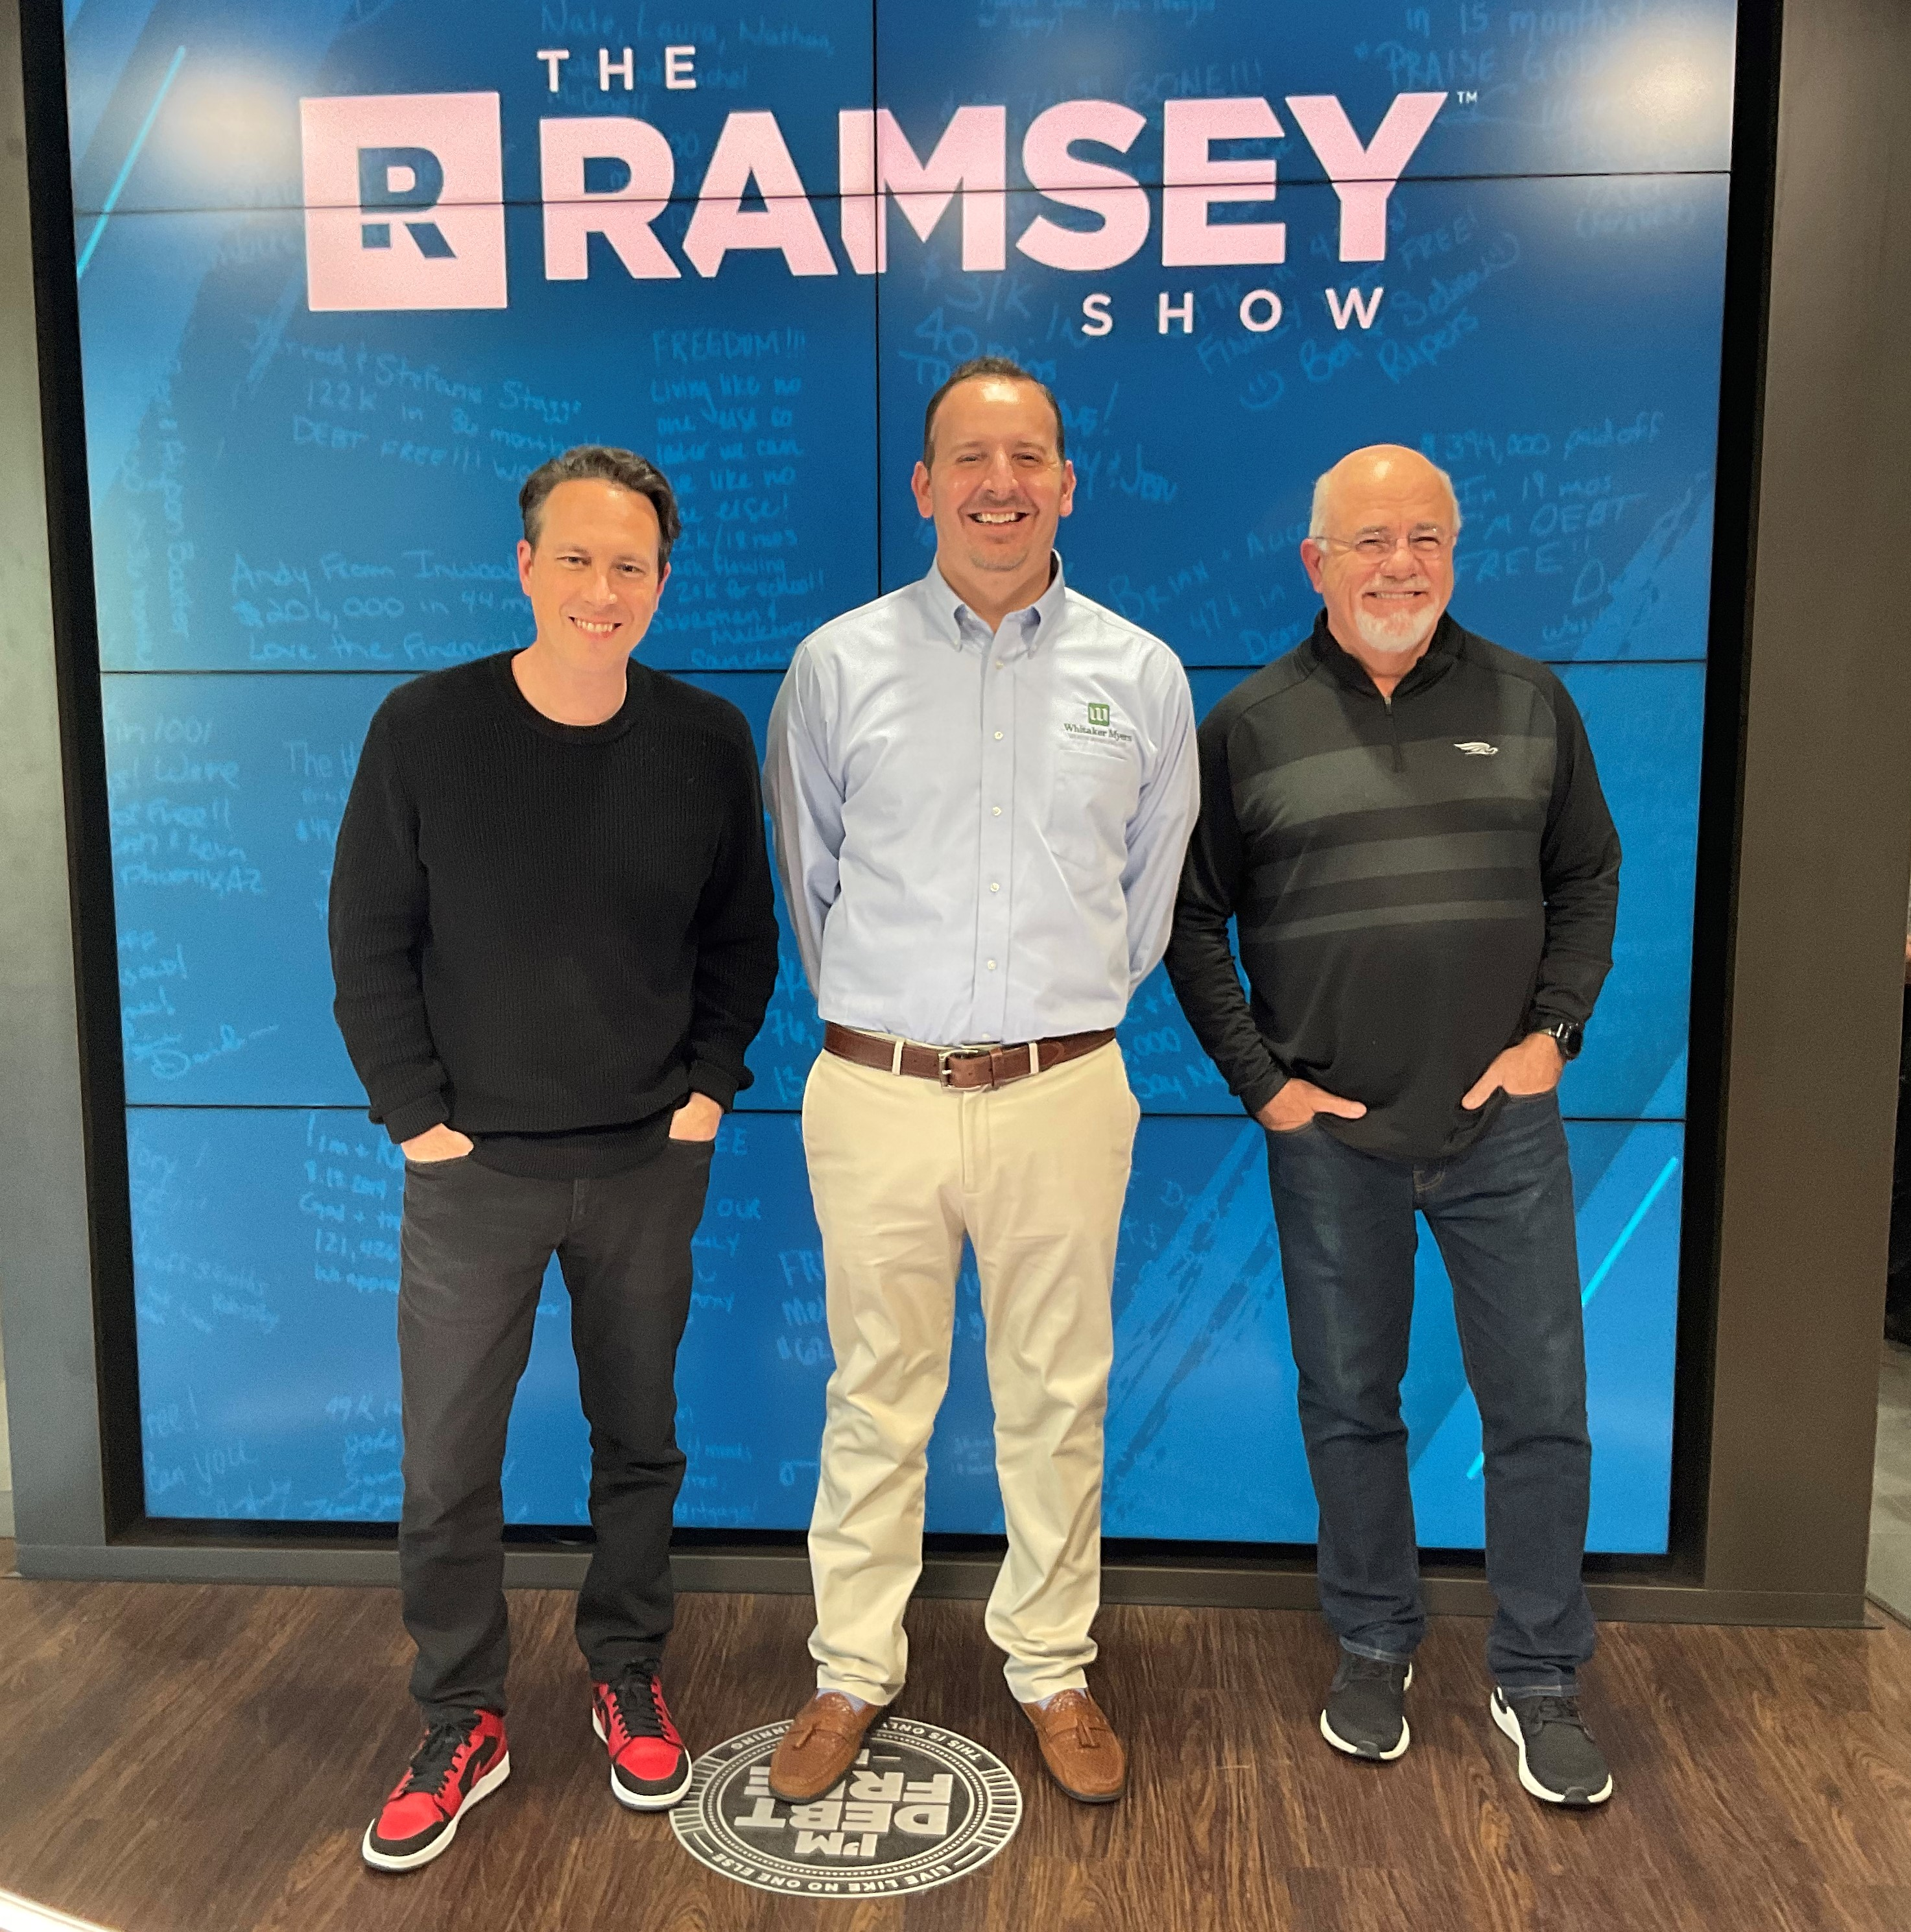 John-mark Young, financial advisor Wooster OH